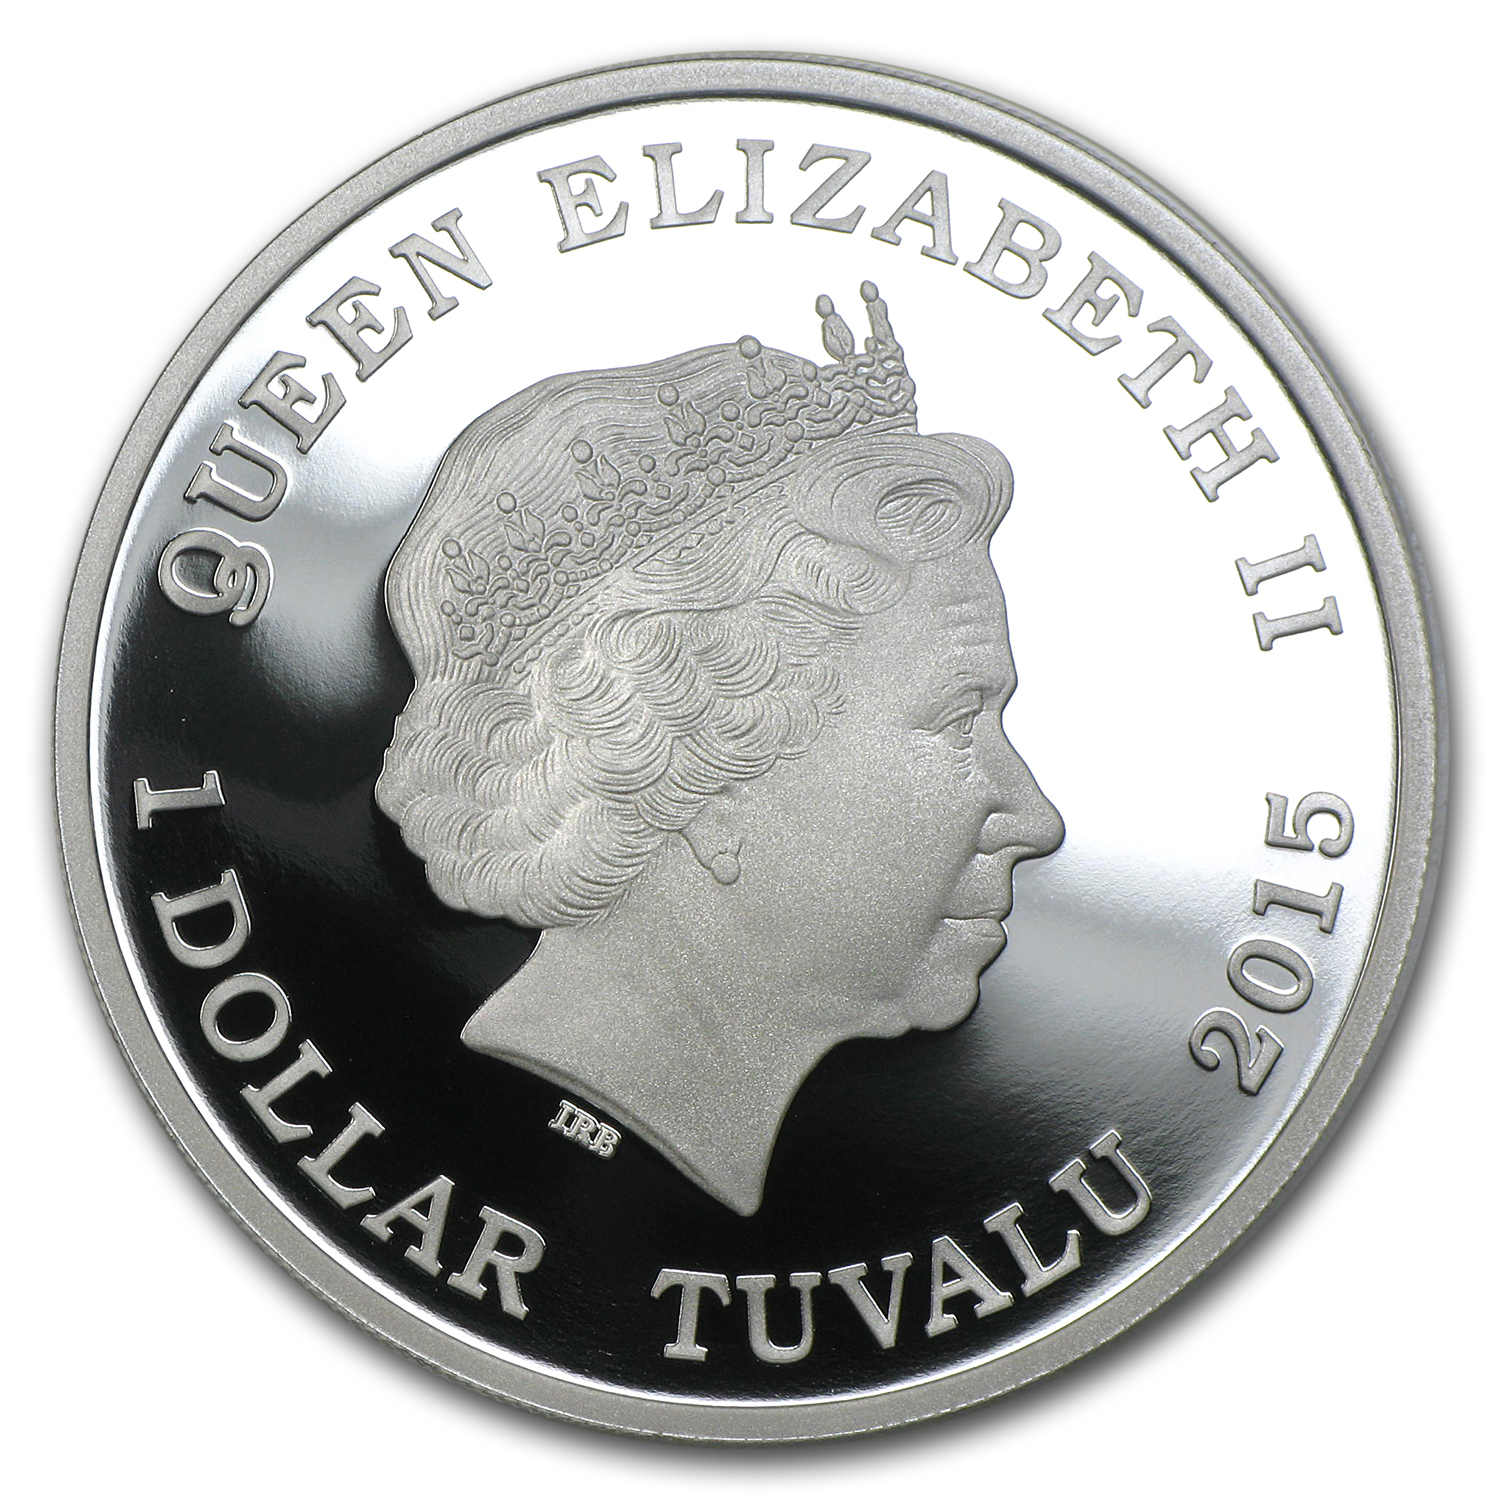 2015 Tuvalu 1 oz Silver Bull Ant Proof